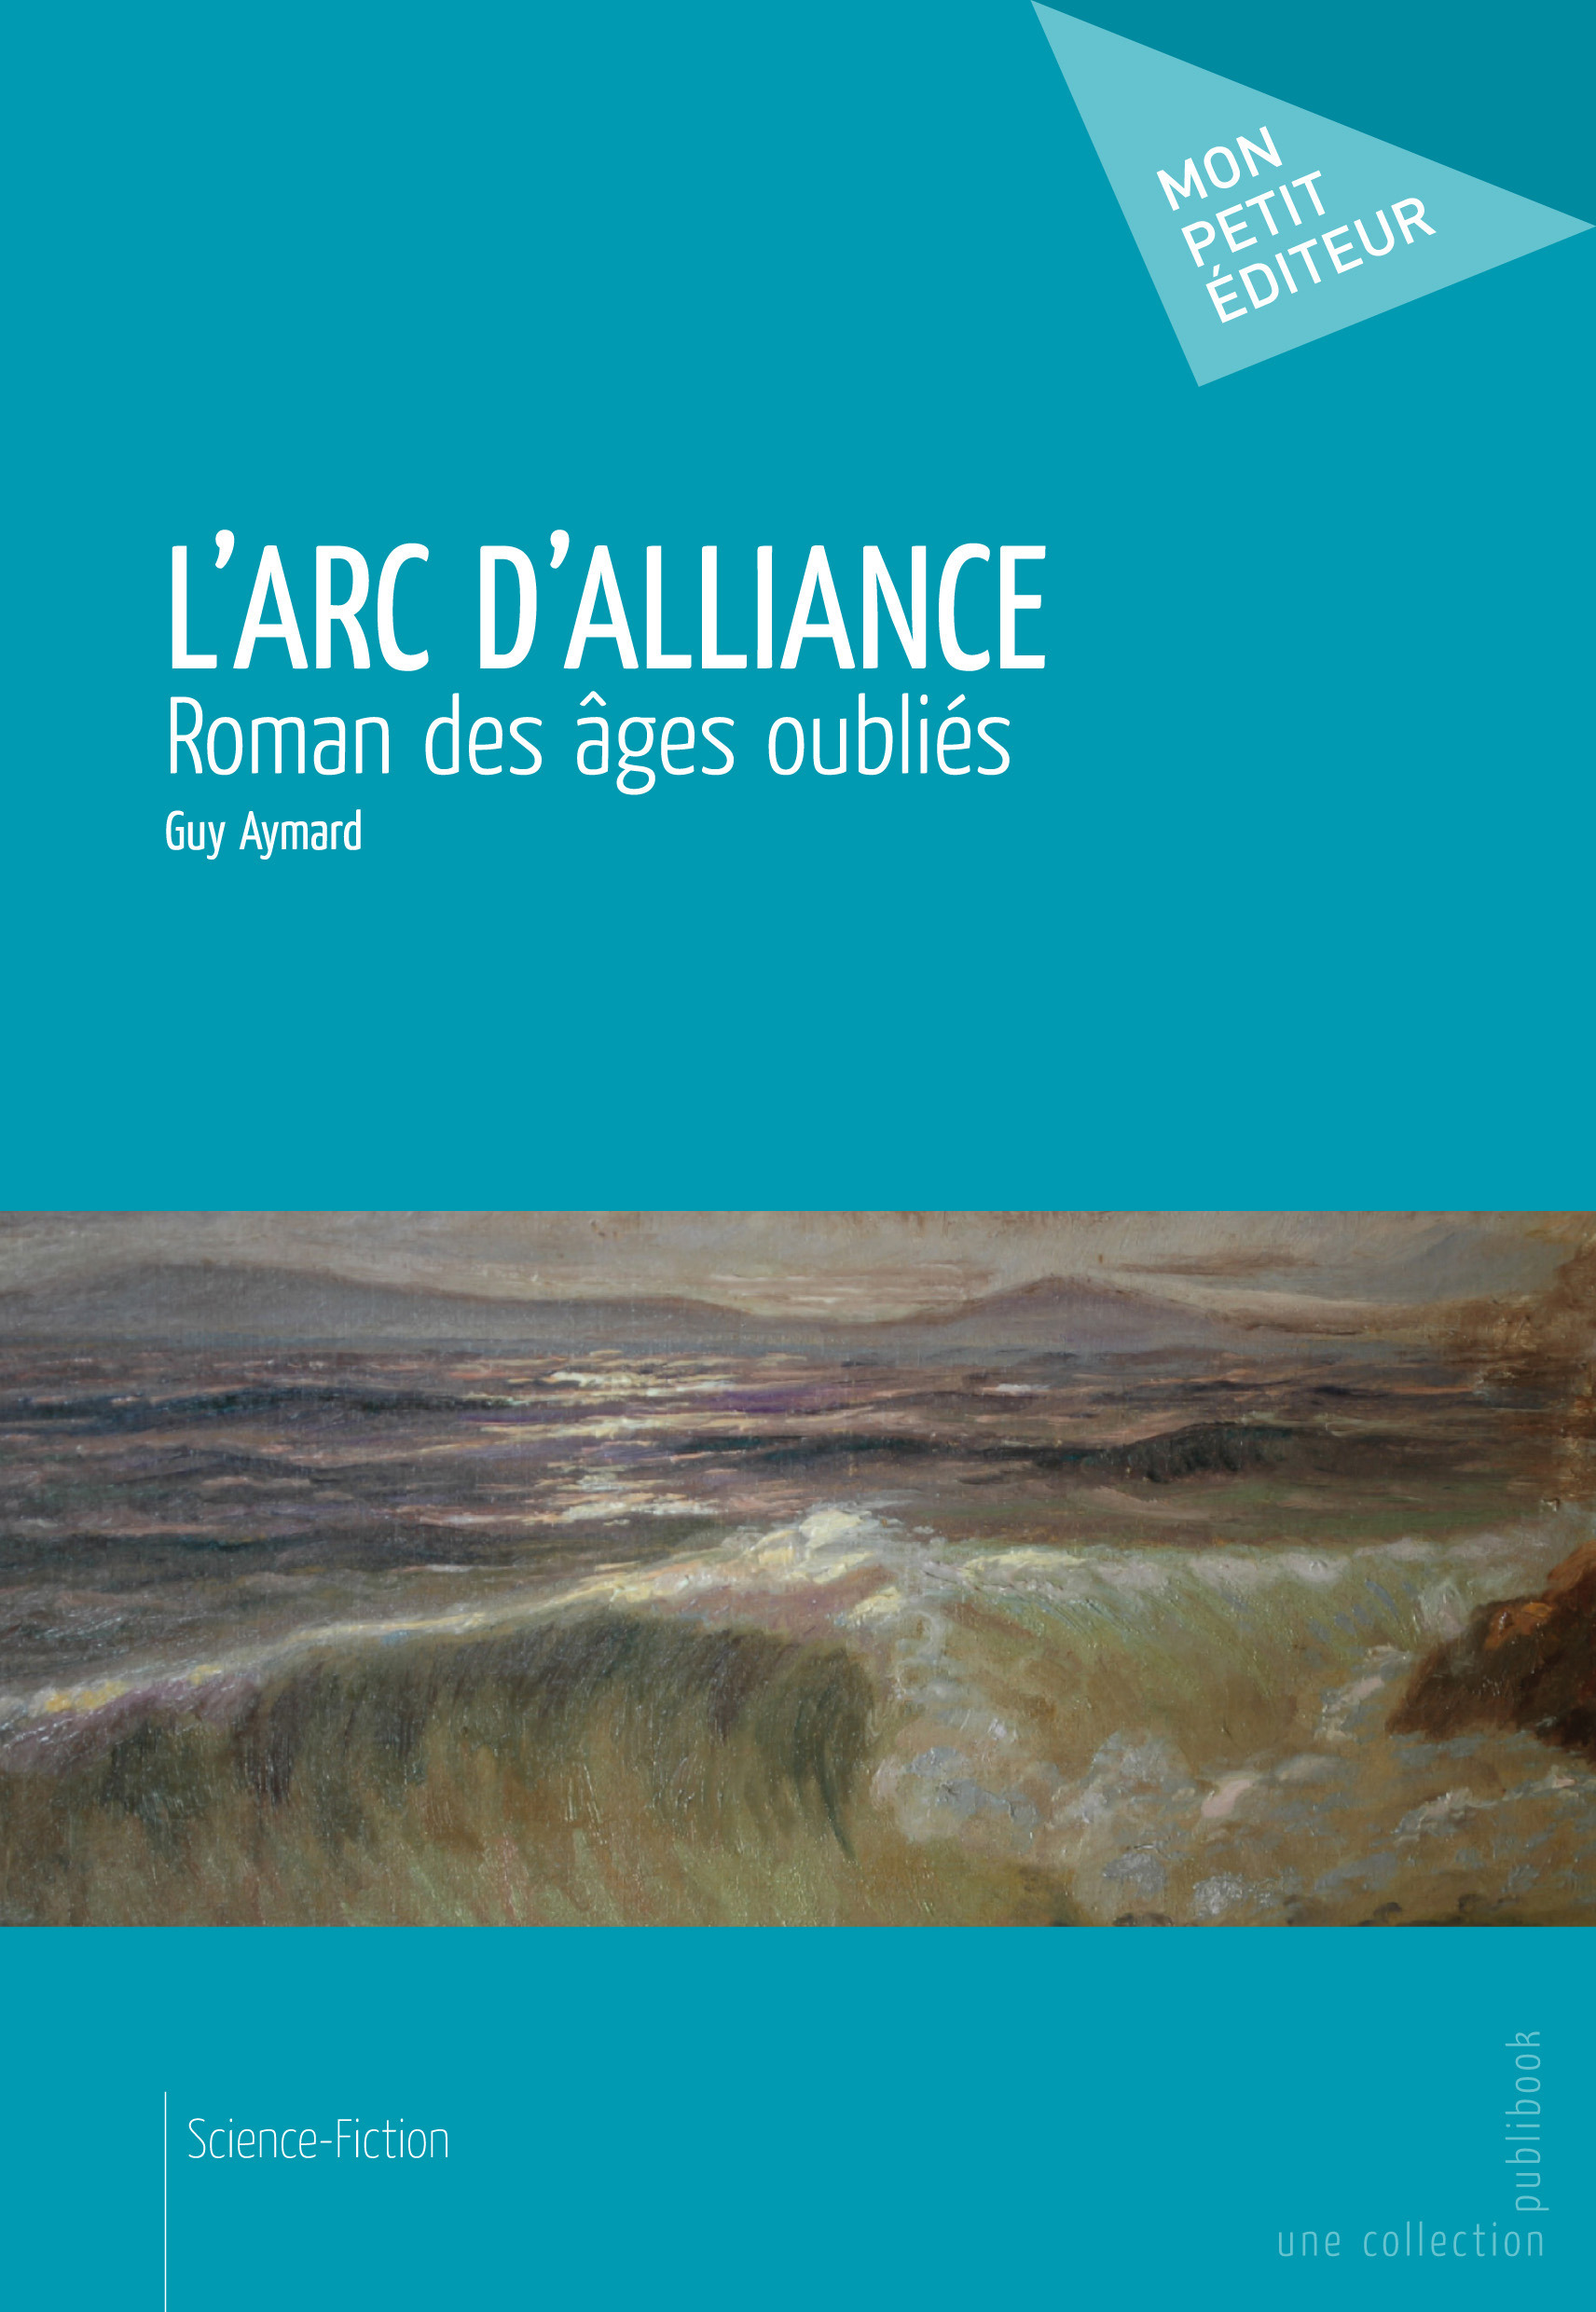 L'arc d'alliance